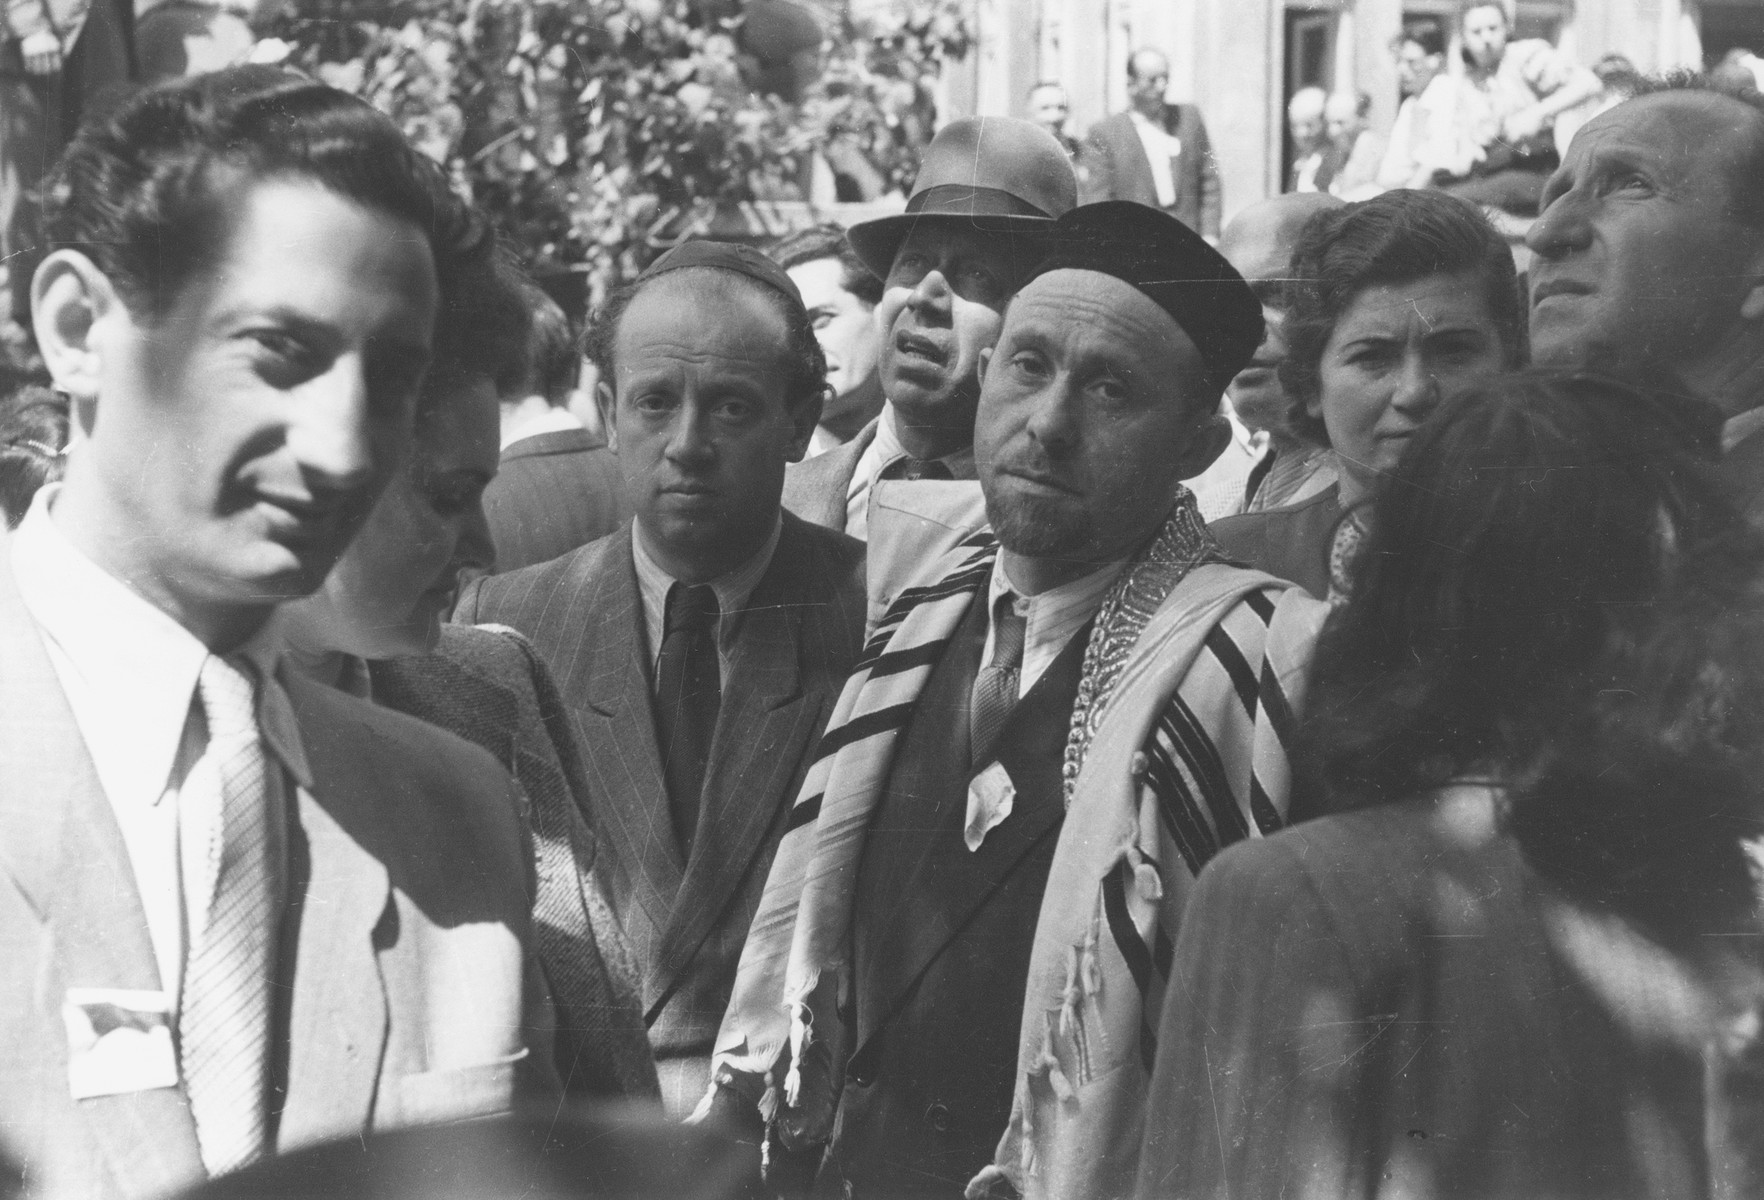 Cantor Jousha Wieder, wearing a tallit, stands among a crowd of Jewish displaced persons at a rally for the new State of Israel in Munich.